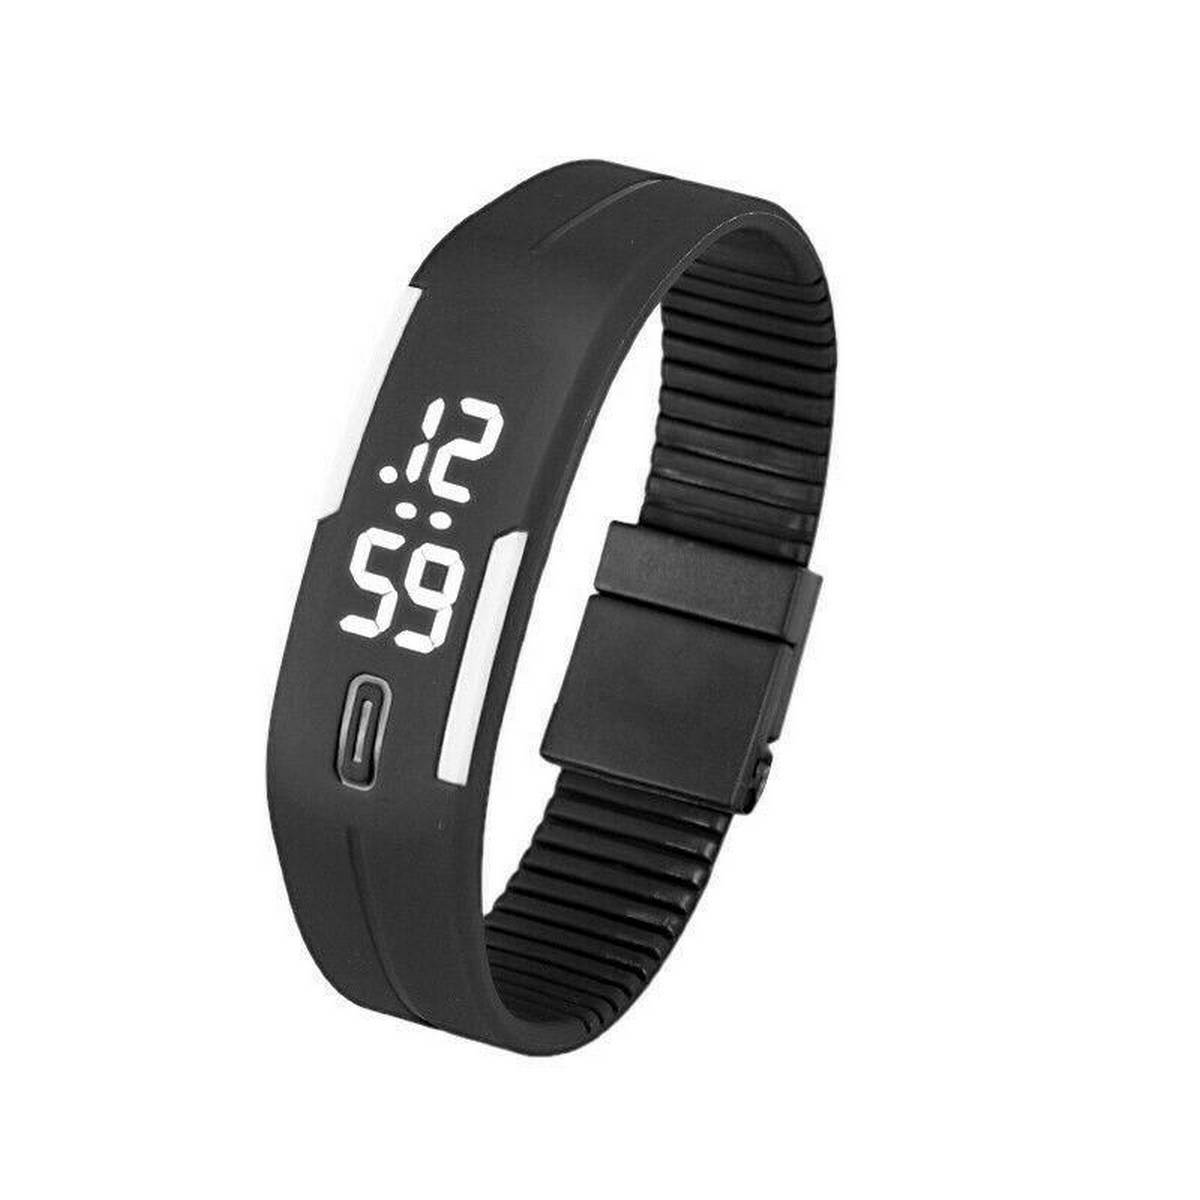 Digital Led Wrist watches Birthday Party Gifts for kids for boys and Girls